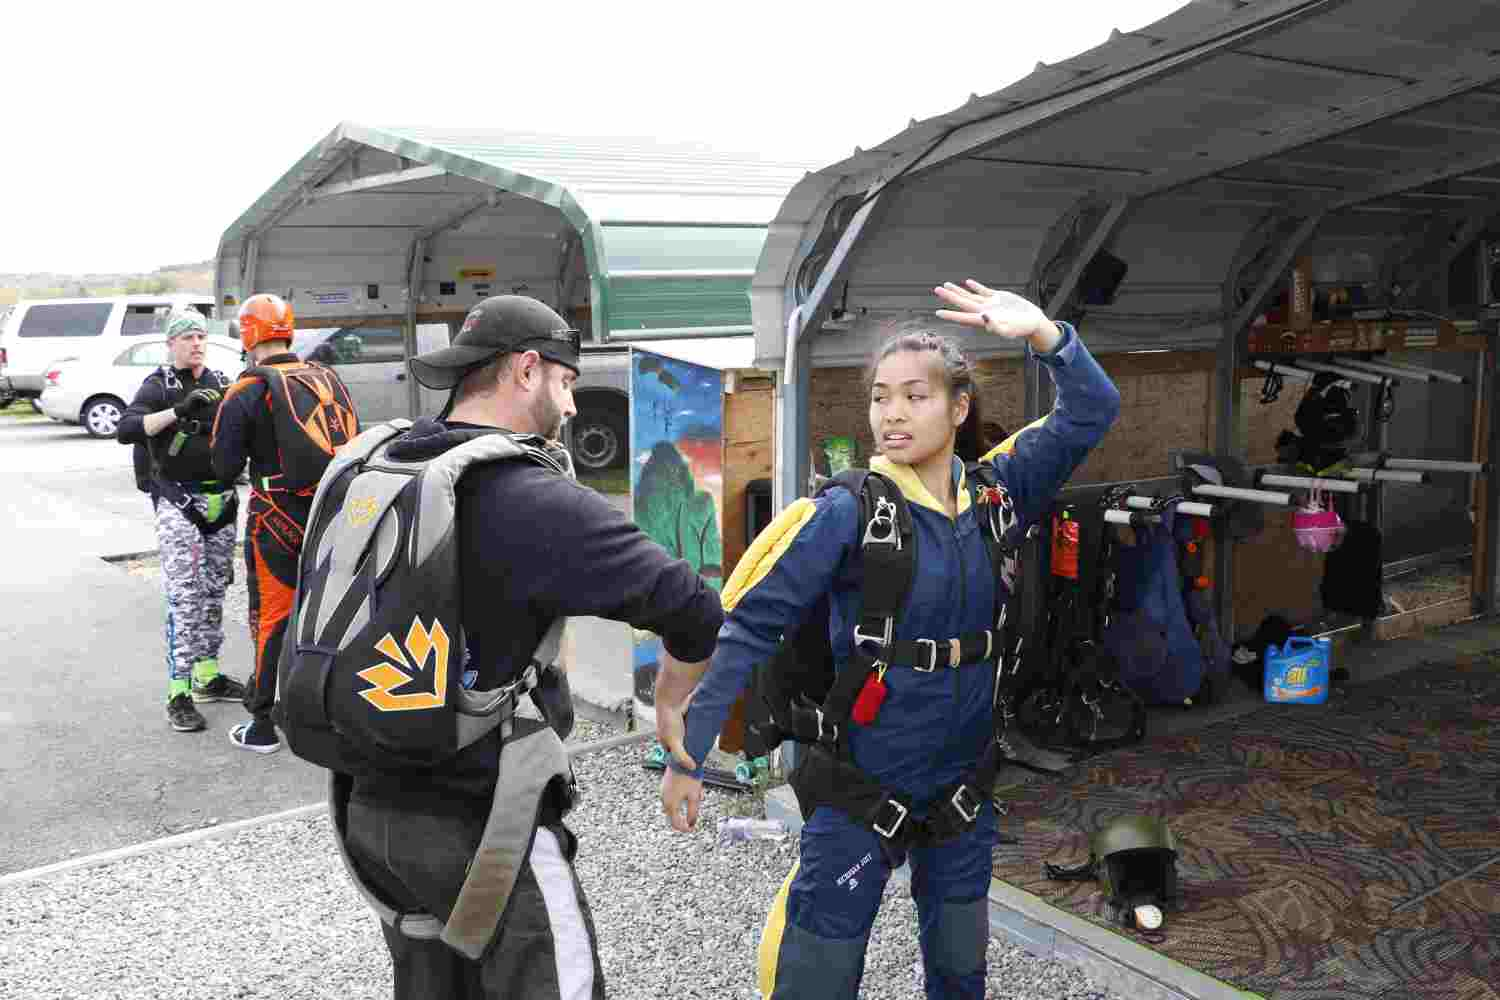 Learning to skydive and checking equipment